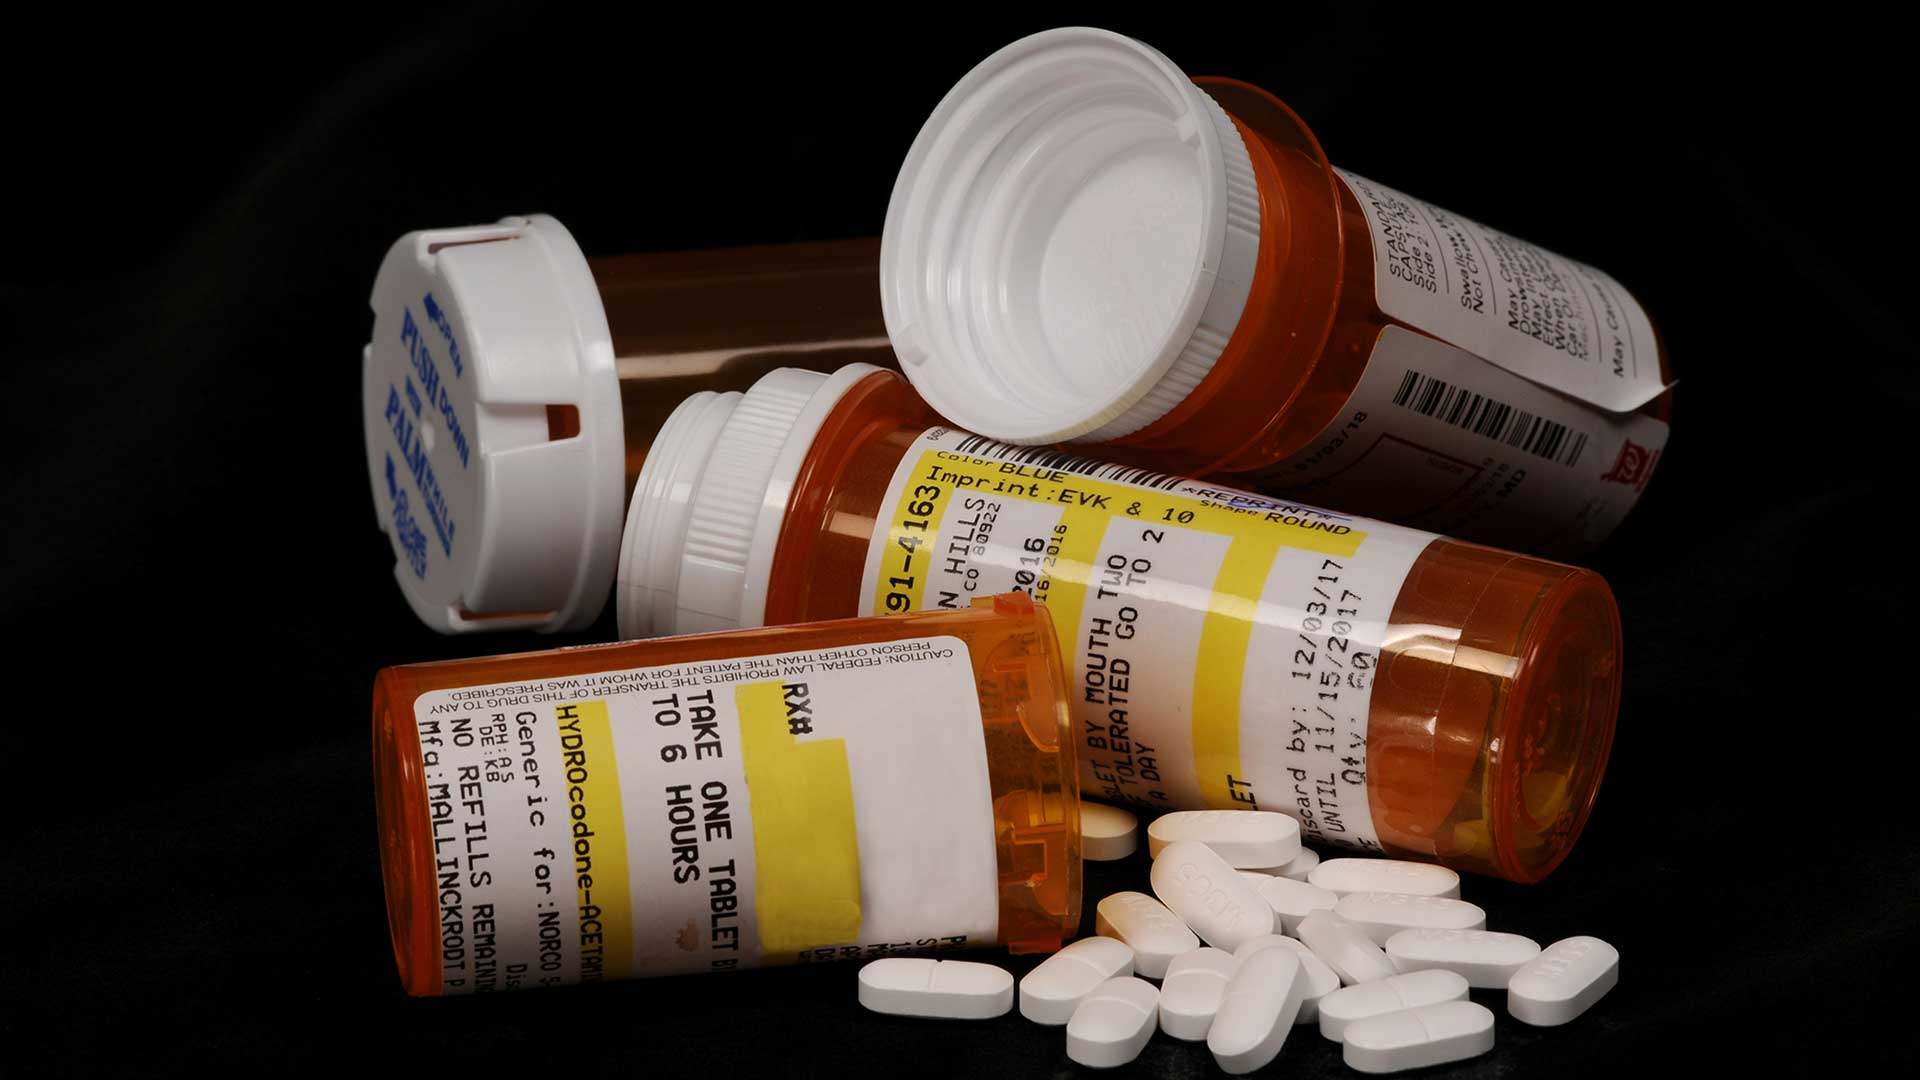 Opioid overdoses in Arizona spiked during March, the first month of the COVID-19 pandemic, and hit a high of 500 in August. Advocates worry that the epidemic, involving both prescription and illicit opioids, is both aggravated by pandemic conditions and masked by them.